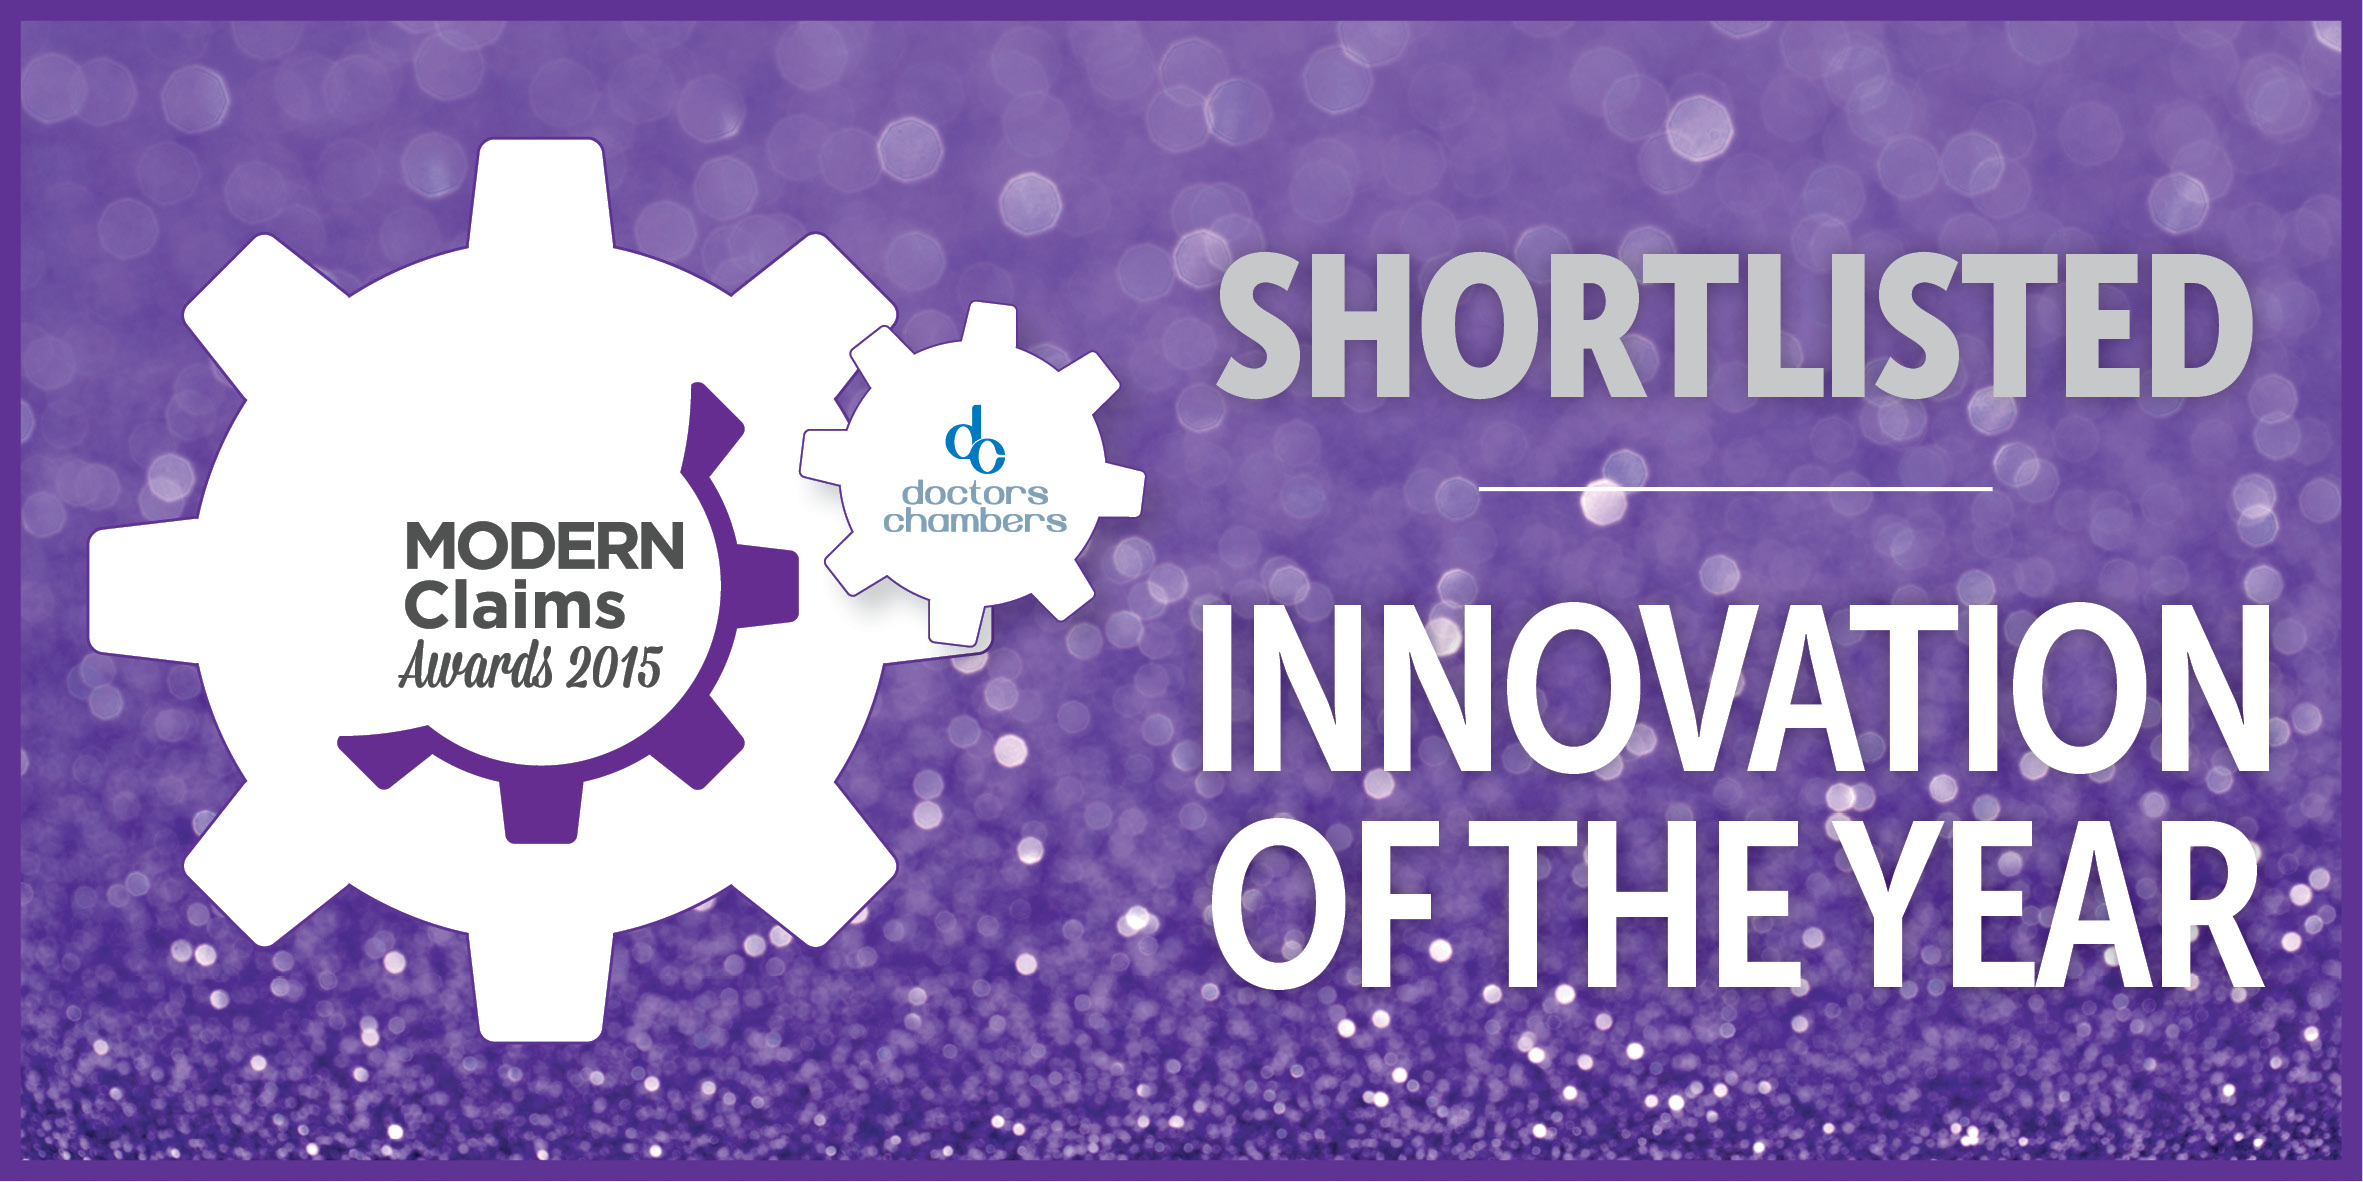 FINALIST, MODERN CLAIMS AWARDS – INNOVATION OF THE YEAR 2015